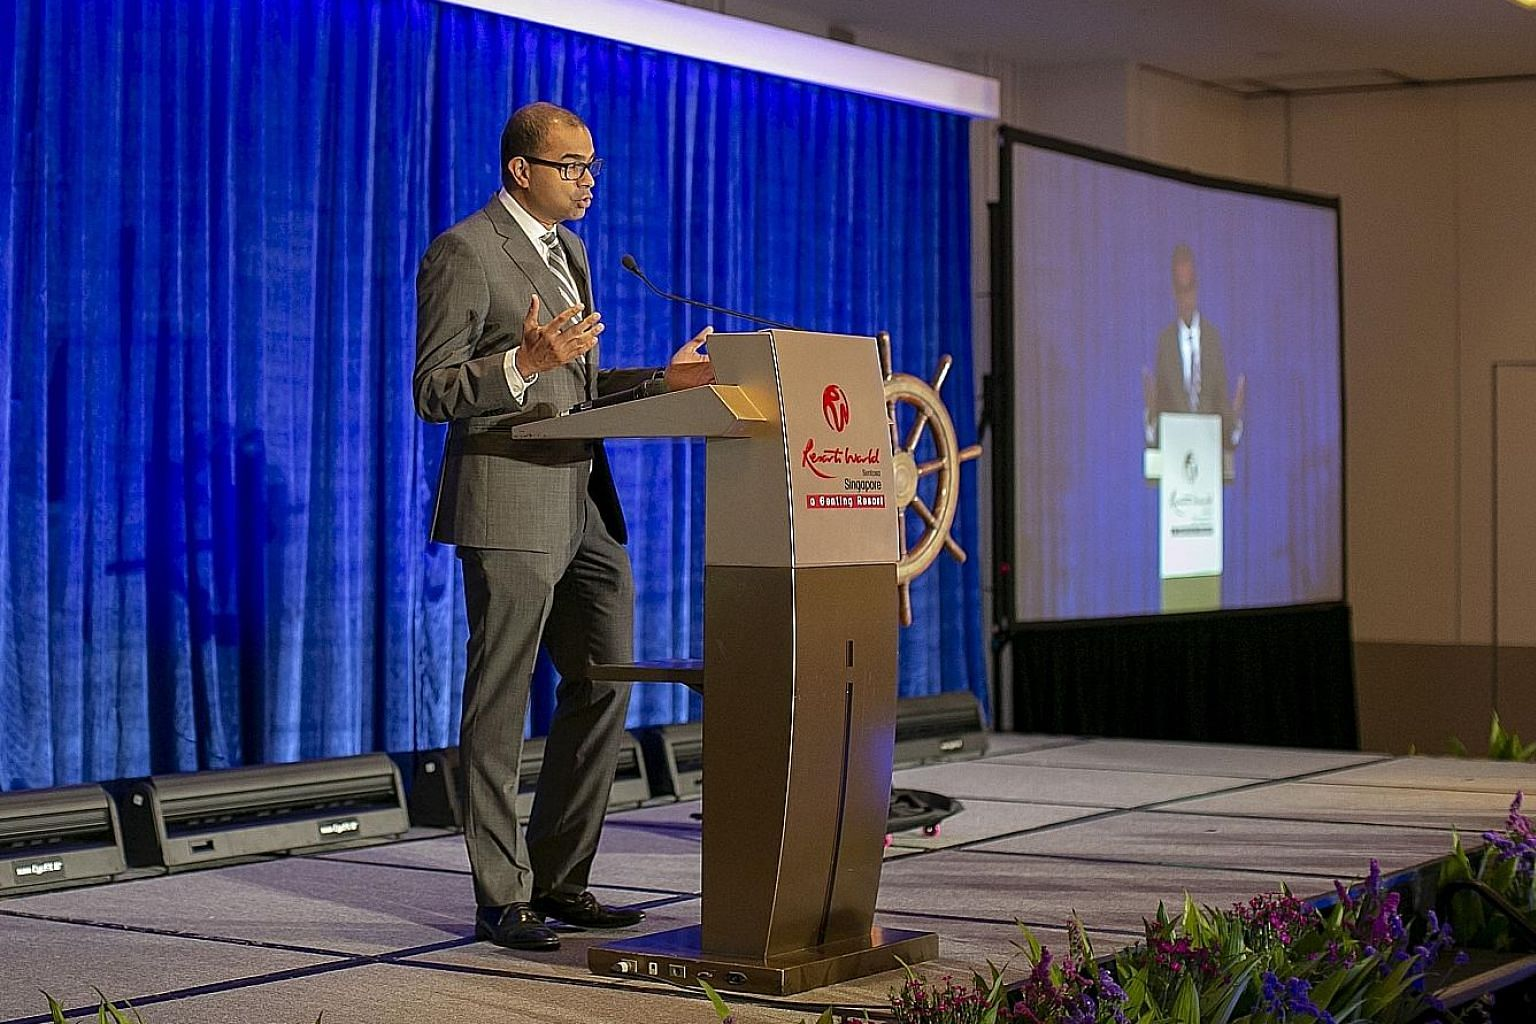 Senior Minister of State for Transport Janil Puthucheary speaking at the first World Congress on Maritime Heritage, held at Resorts World Sentosa's Equarius Hotel, yesterday.